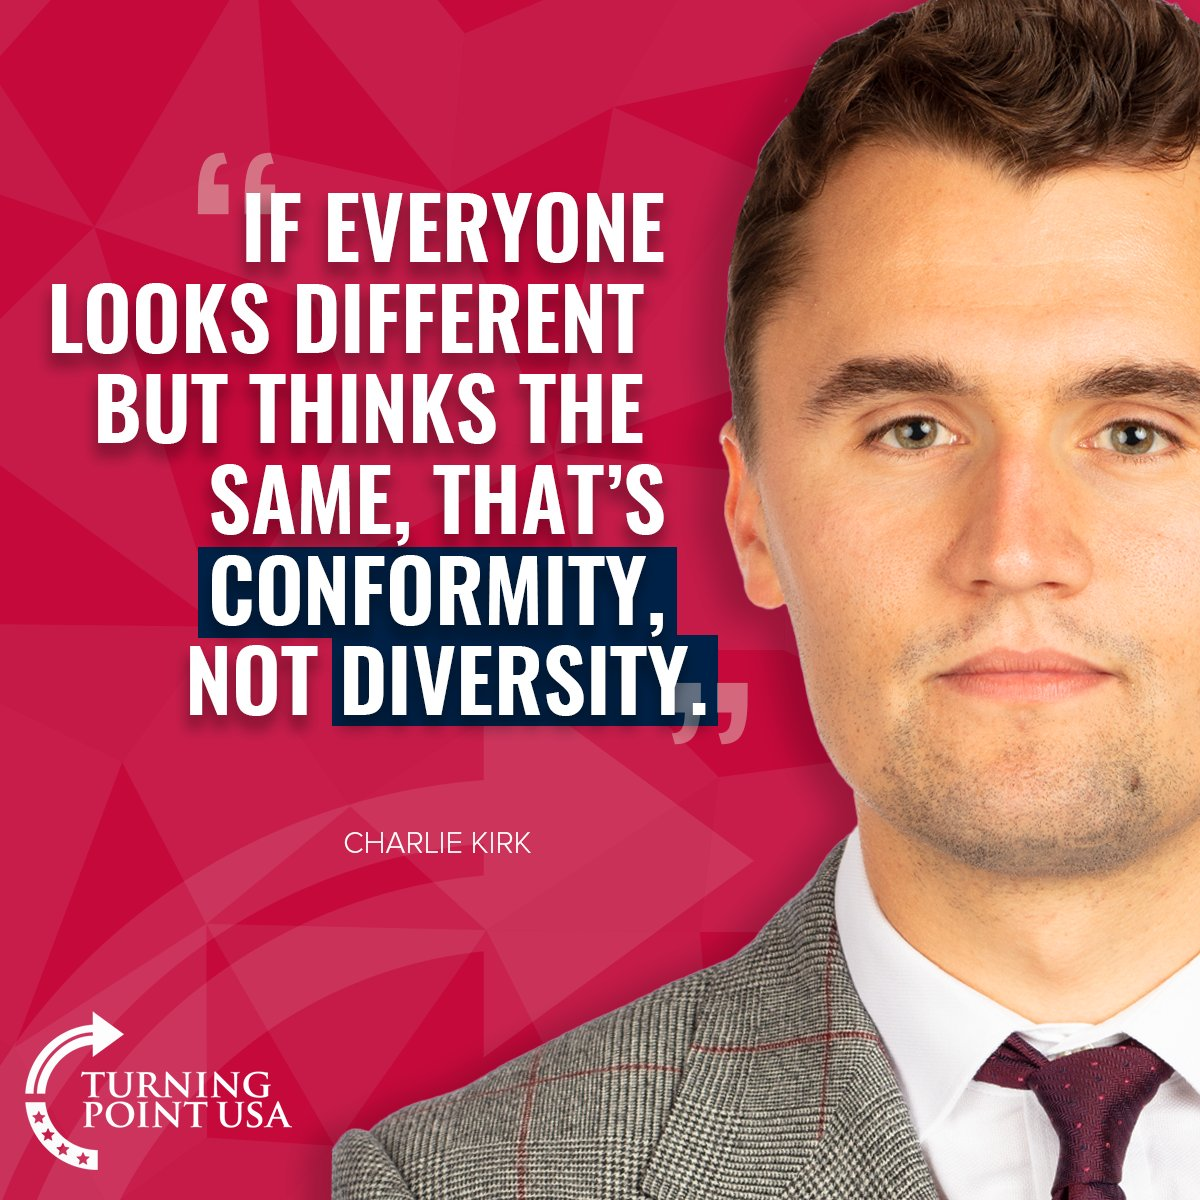 EXACTLY, @charliekirk11! #ThinkForYourself